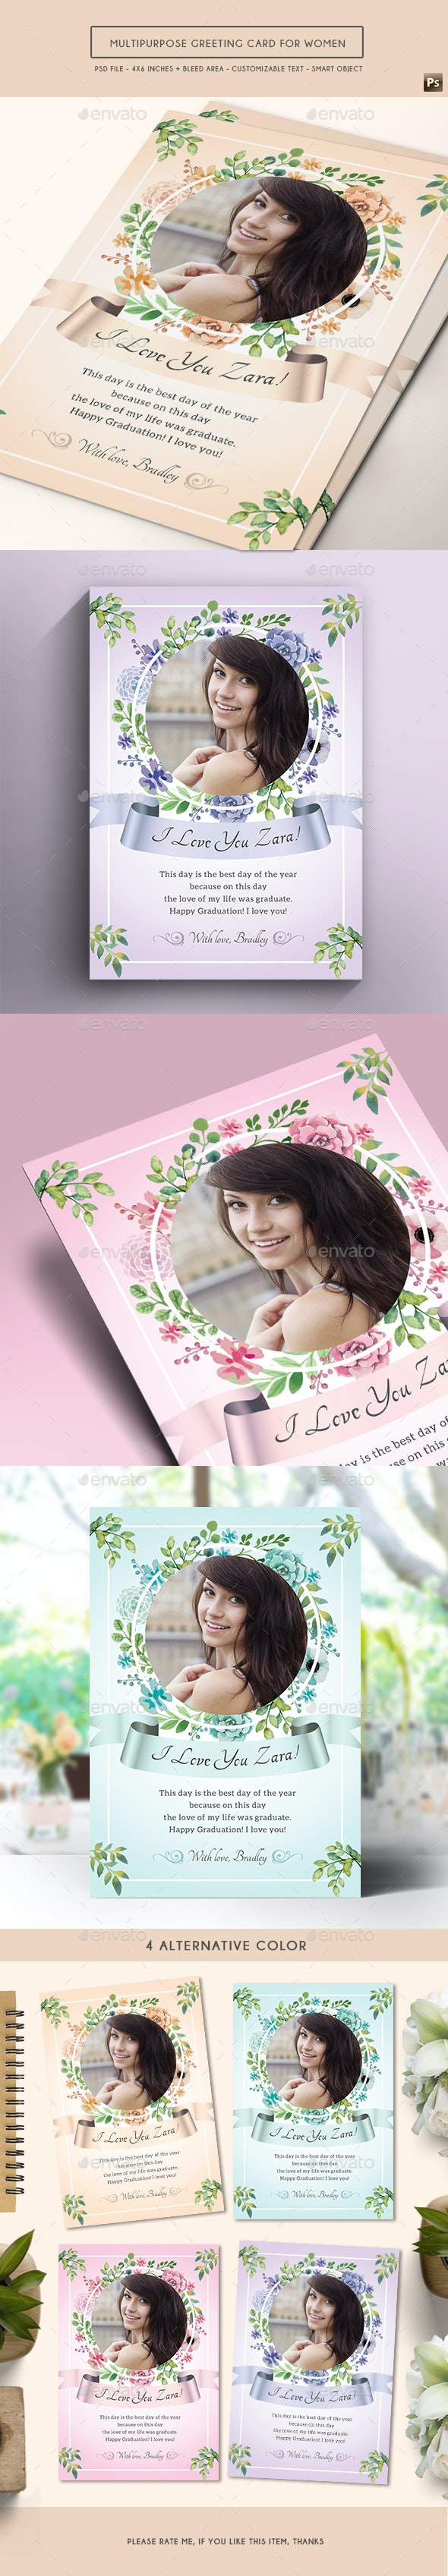 Multipurpose Greeting Card for Women - Birthday Greeting Cards